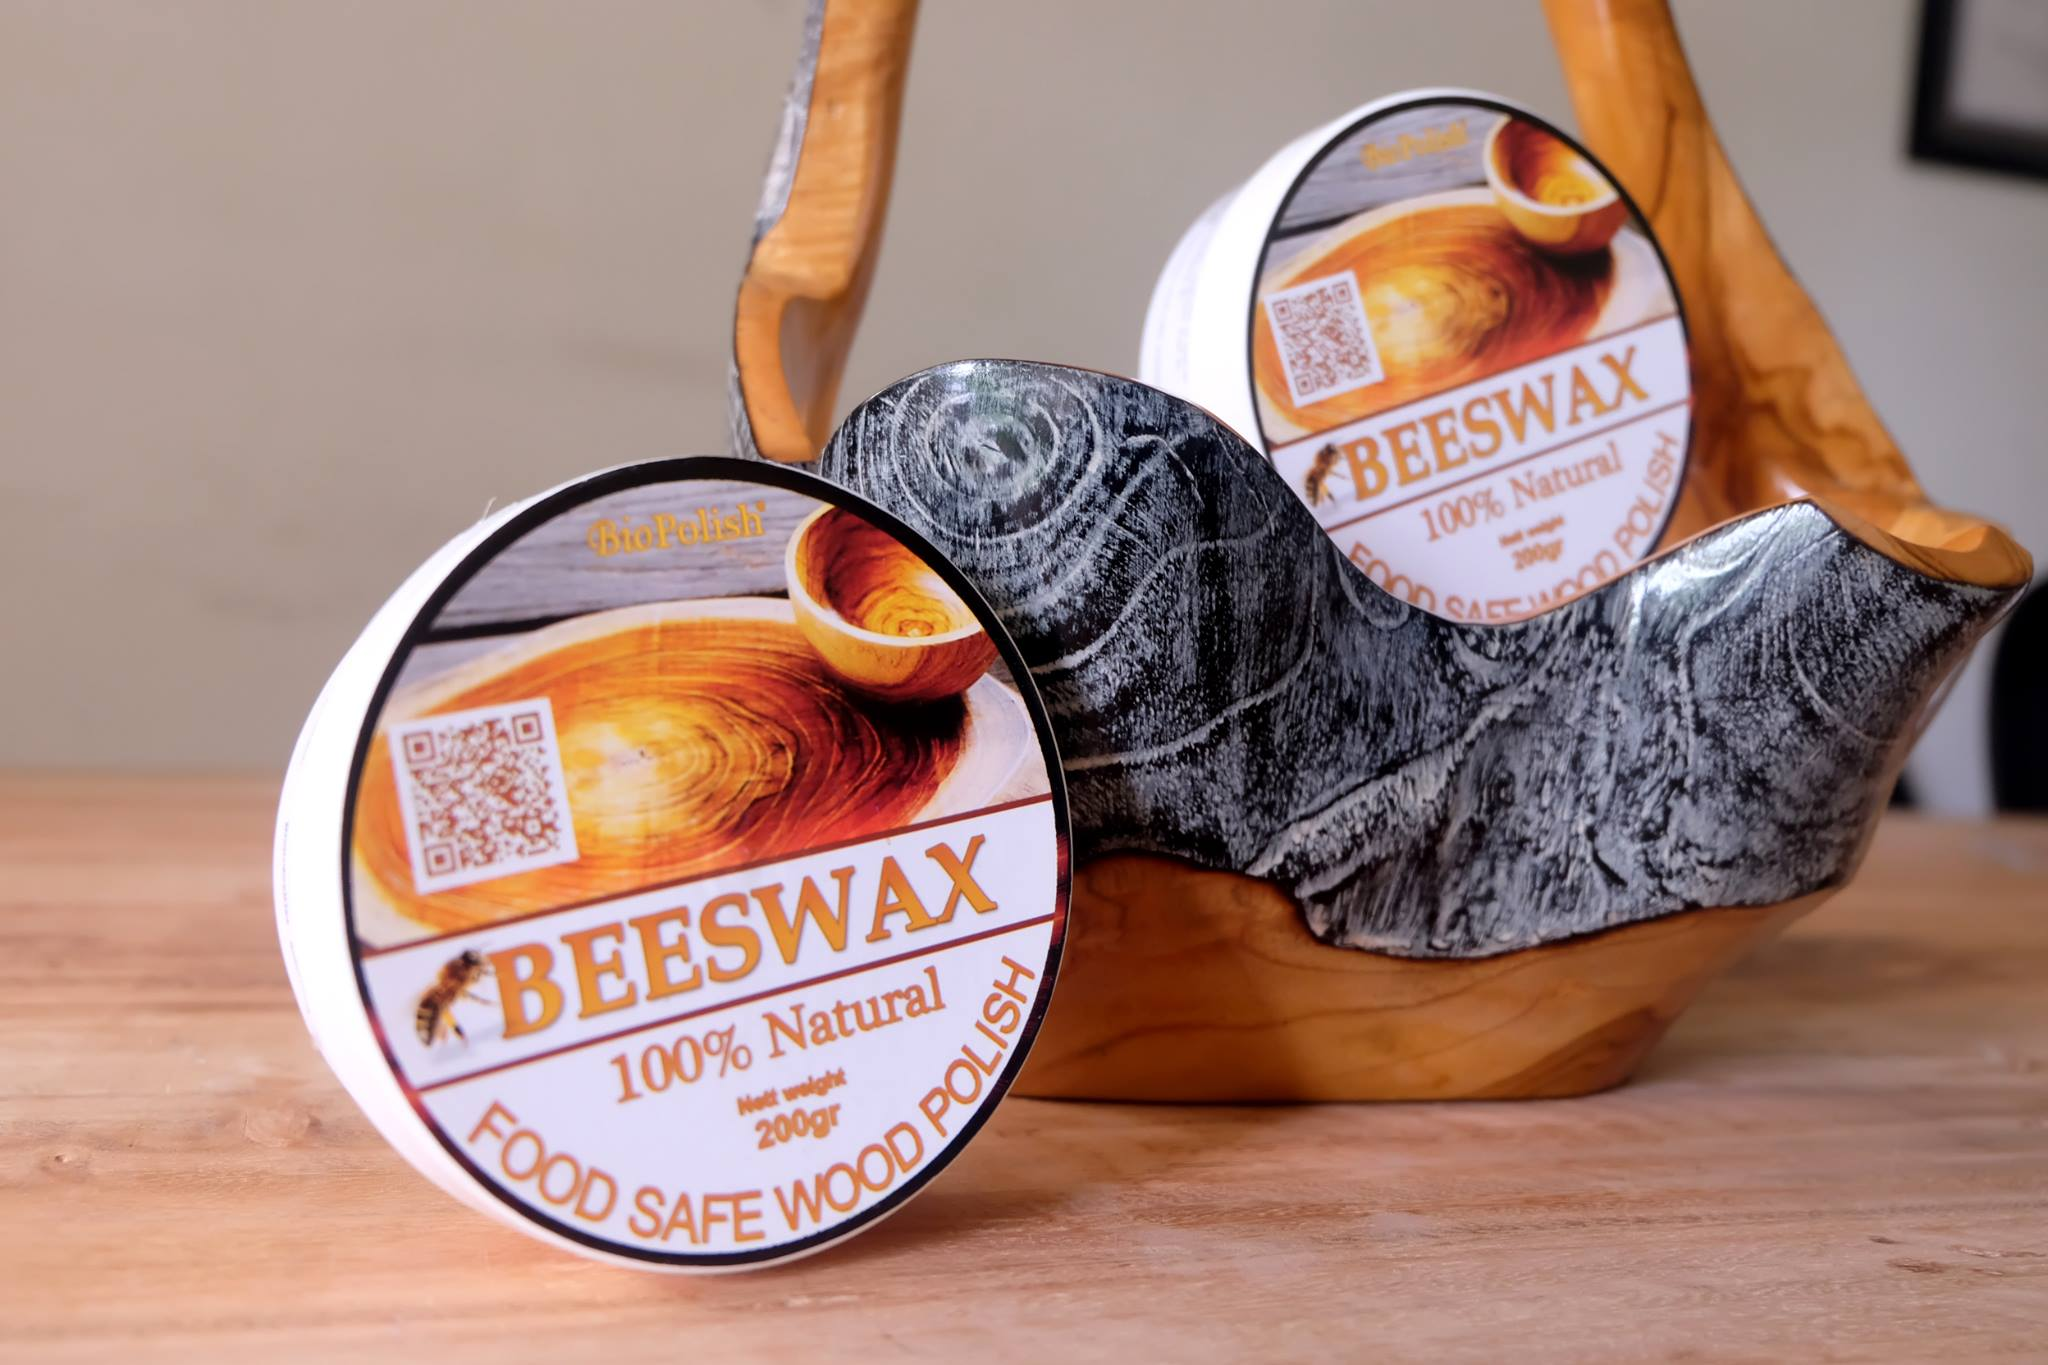 Biopolish Beeswax